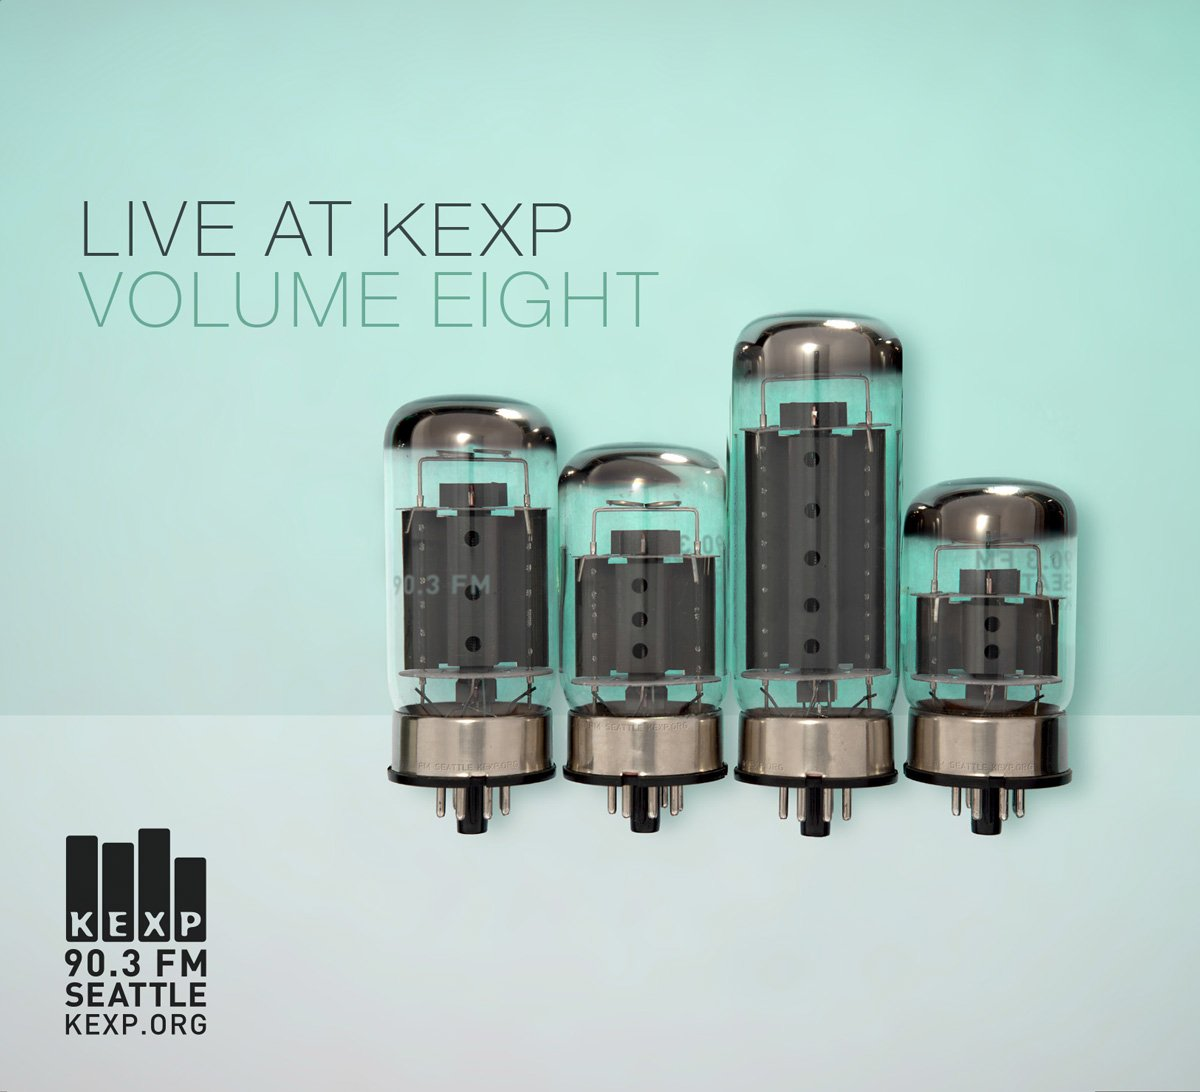 Live at KEXP Volume Eight by Kexp